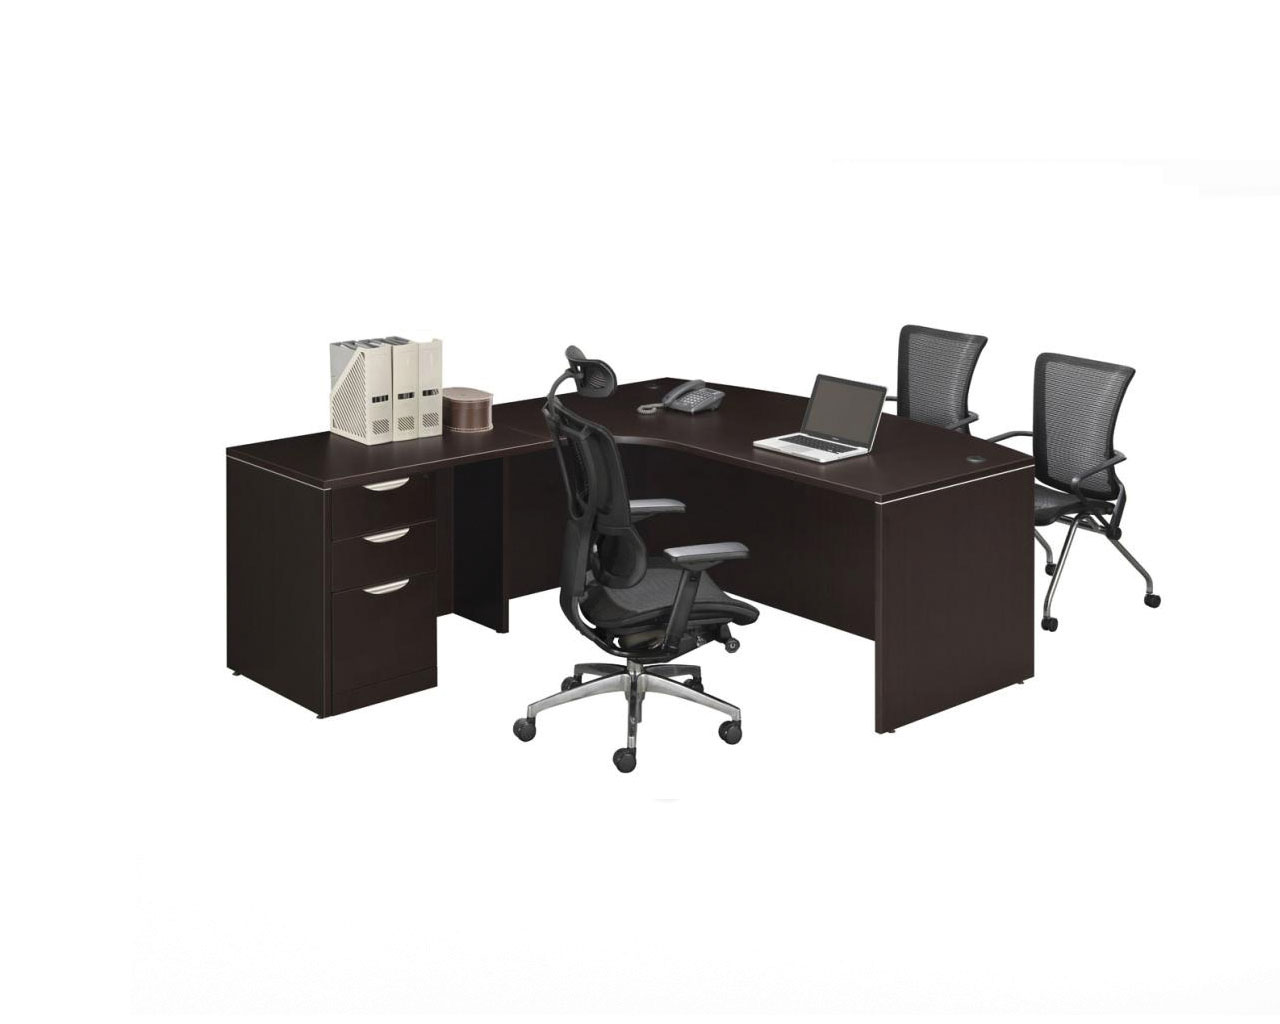 Radius Bowfront Desk with Box/Box/File Pedestal